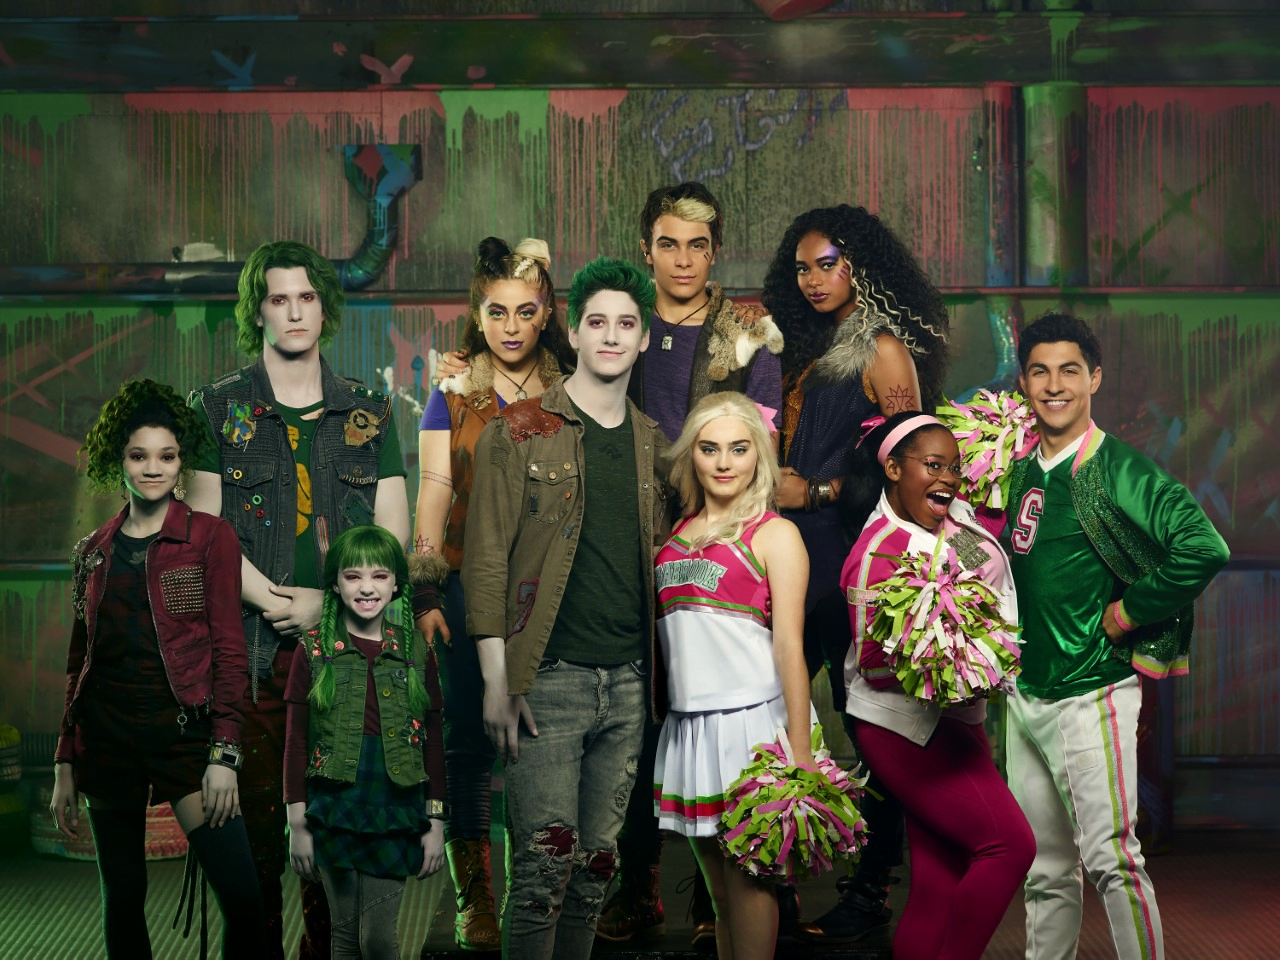 Best Zombies 2 Quotes on Disney Channel